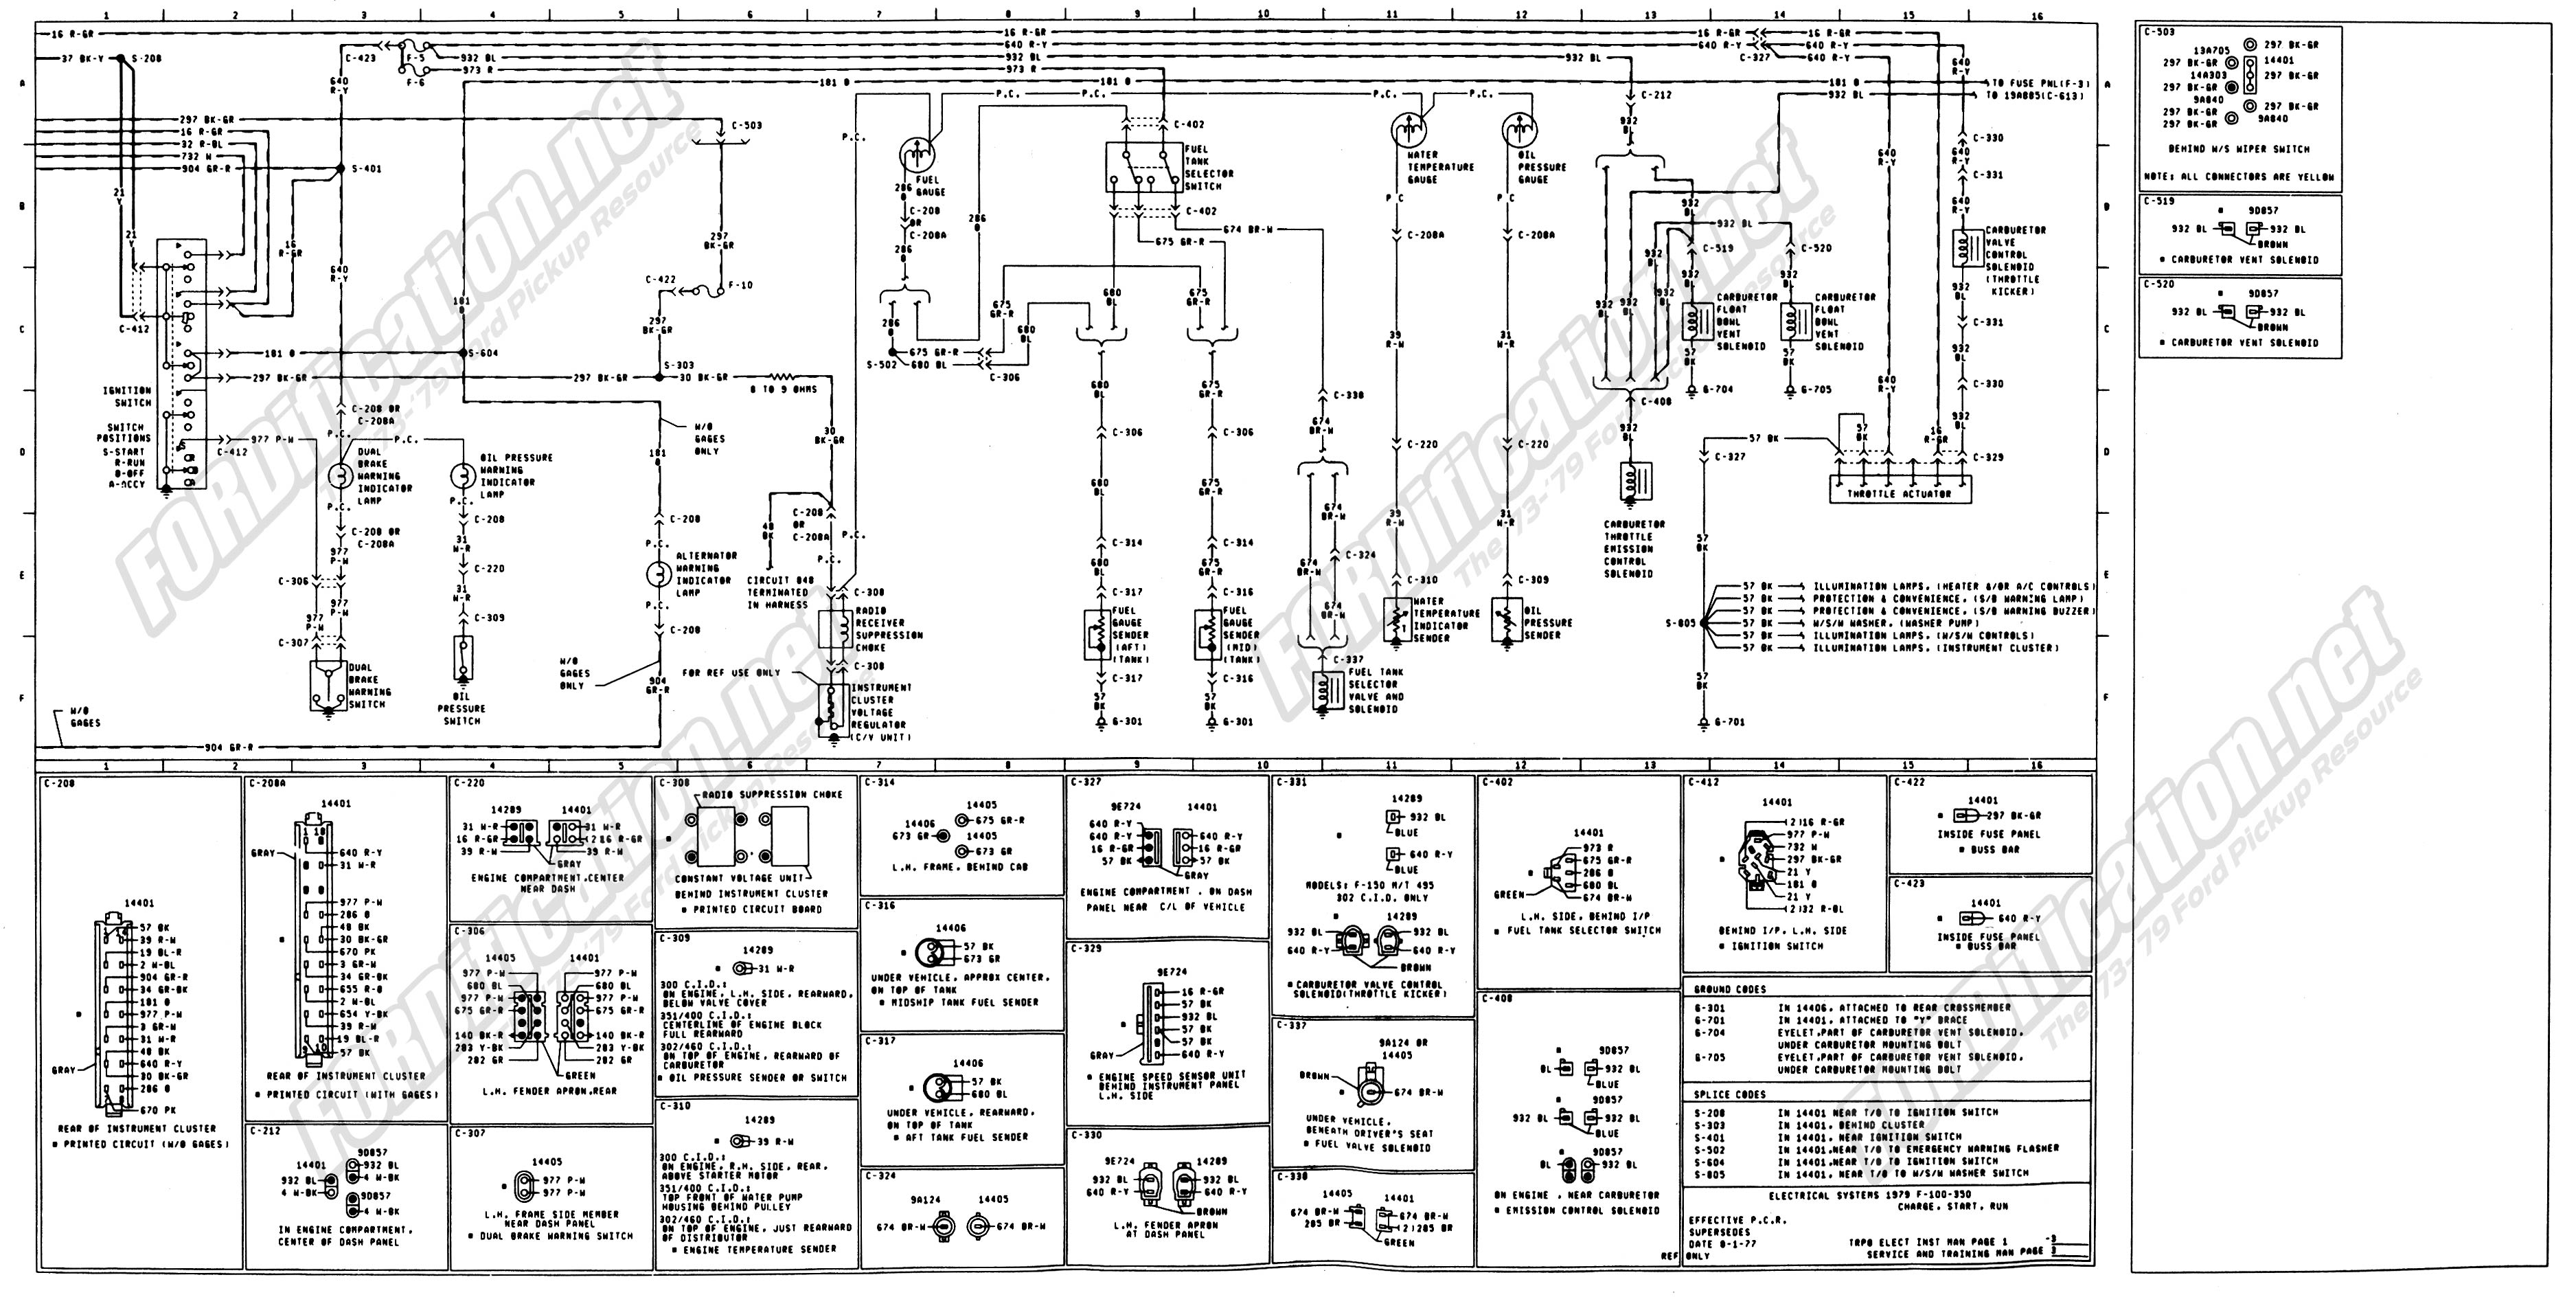 2002 ford f250 wiring diagram wiring diagram and schematic design images of 2002 f250 radio wire diagrams diagram 2001 ford f